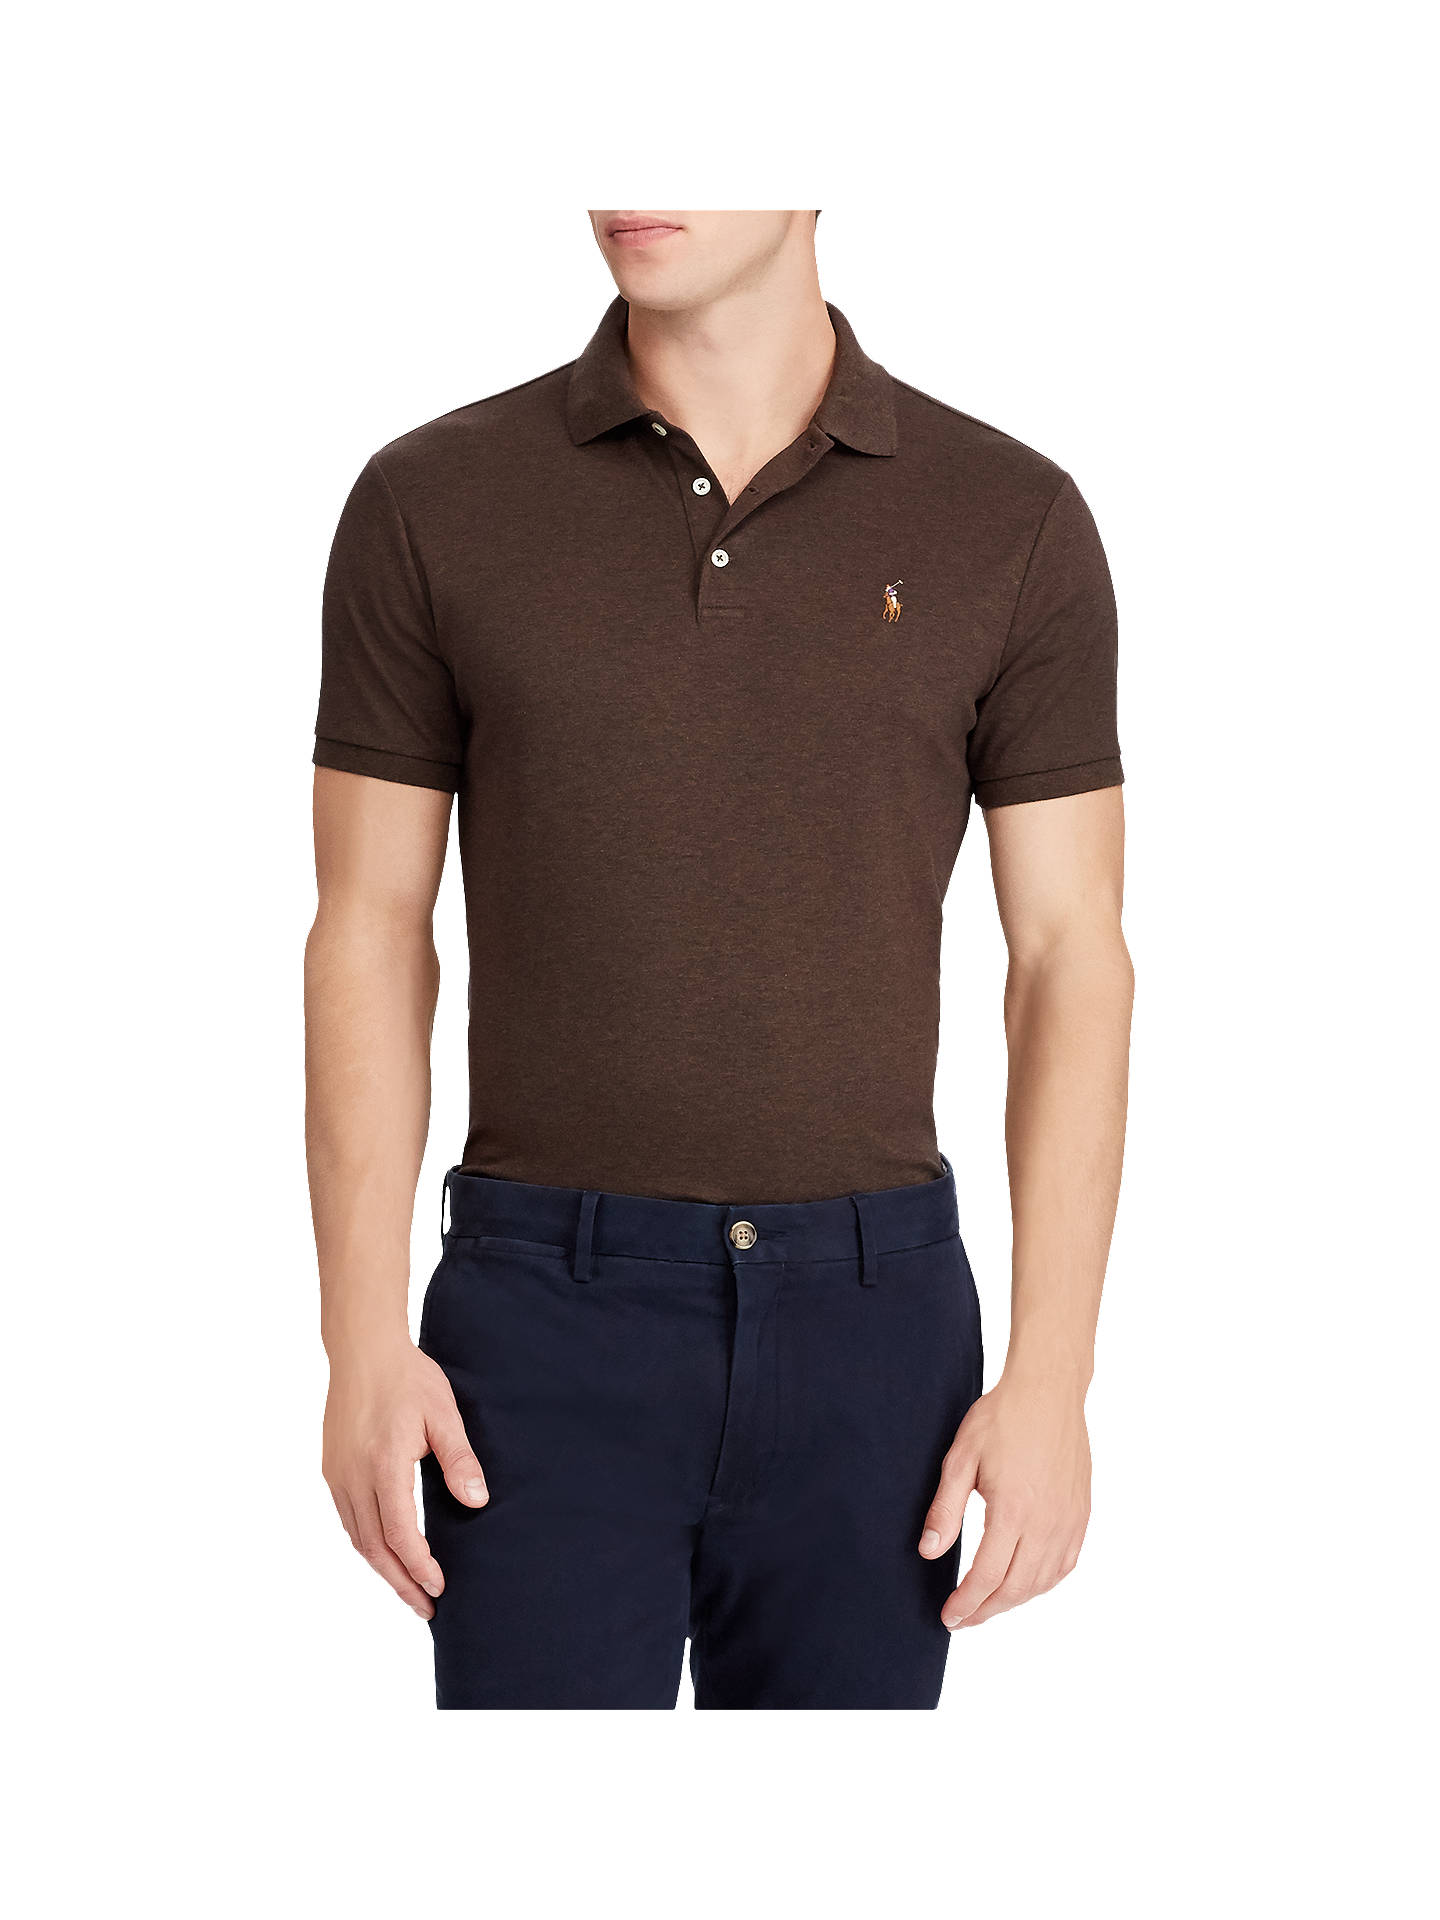 6cf0c57ff7f5d Buy Polo Ralph Lauren Pima Cotton Slim Fit Polo Shirt, Alpine Brown  Heather, S ...